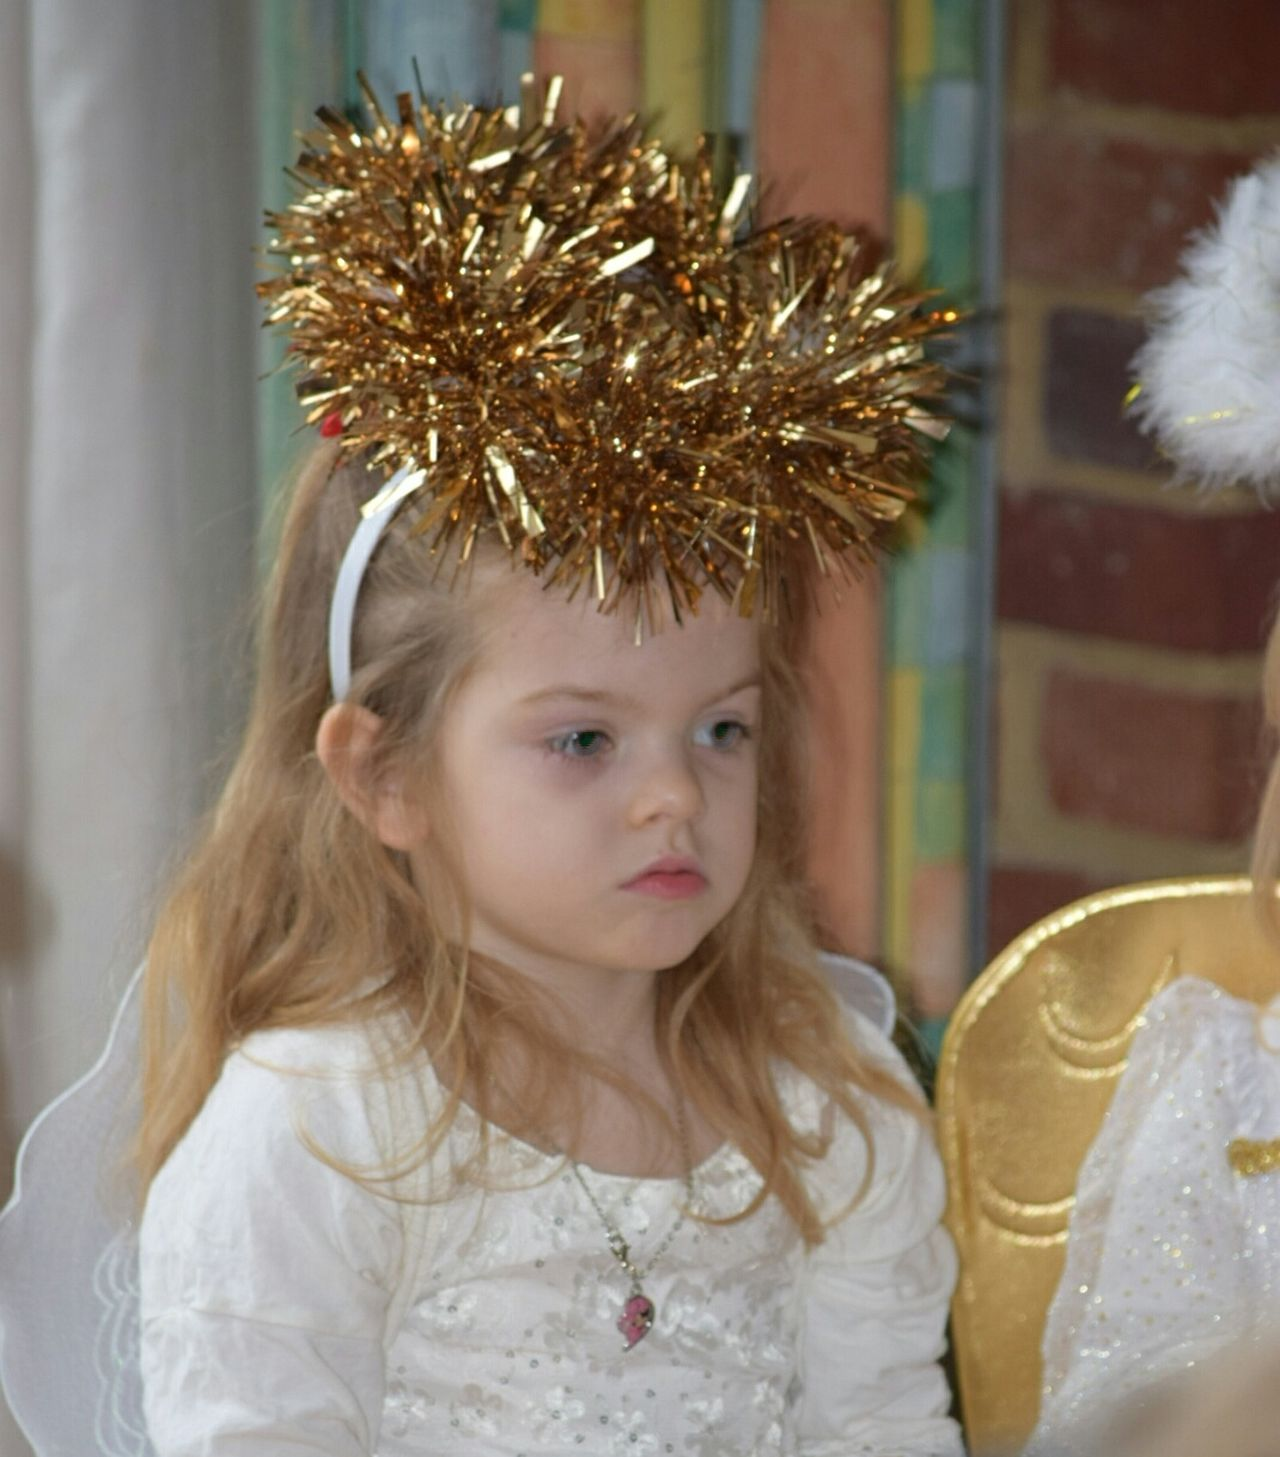 Child Cute Crown One Girl Only One Person Nativity Christmas School Play Angel Childhood Girls Children Only Elementary Age Innocence Only Girls People Blond Hair Portrait Day Close-up Crown White Calm Niece  Indoors